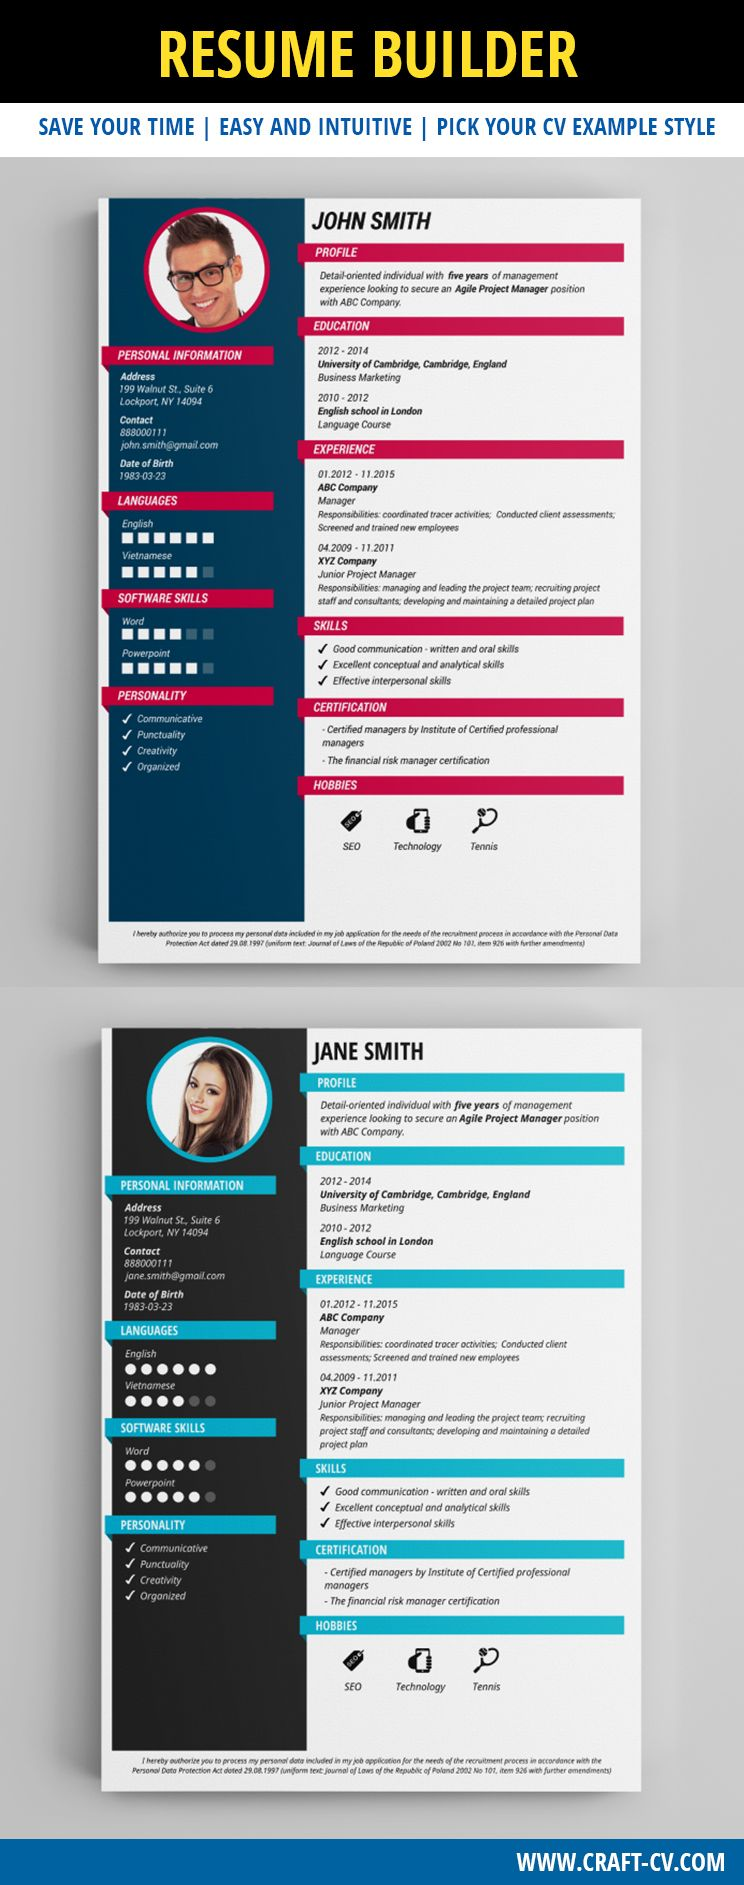 Resume Builder - Creative Resume Templates #creativeresume #resume ...